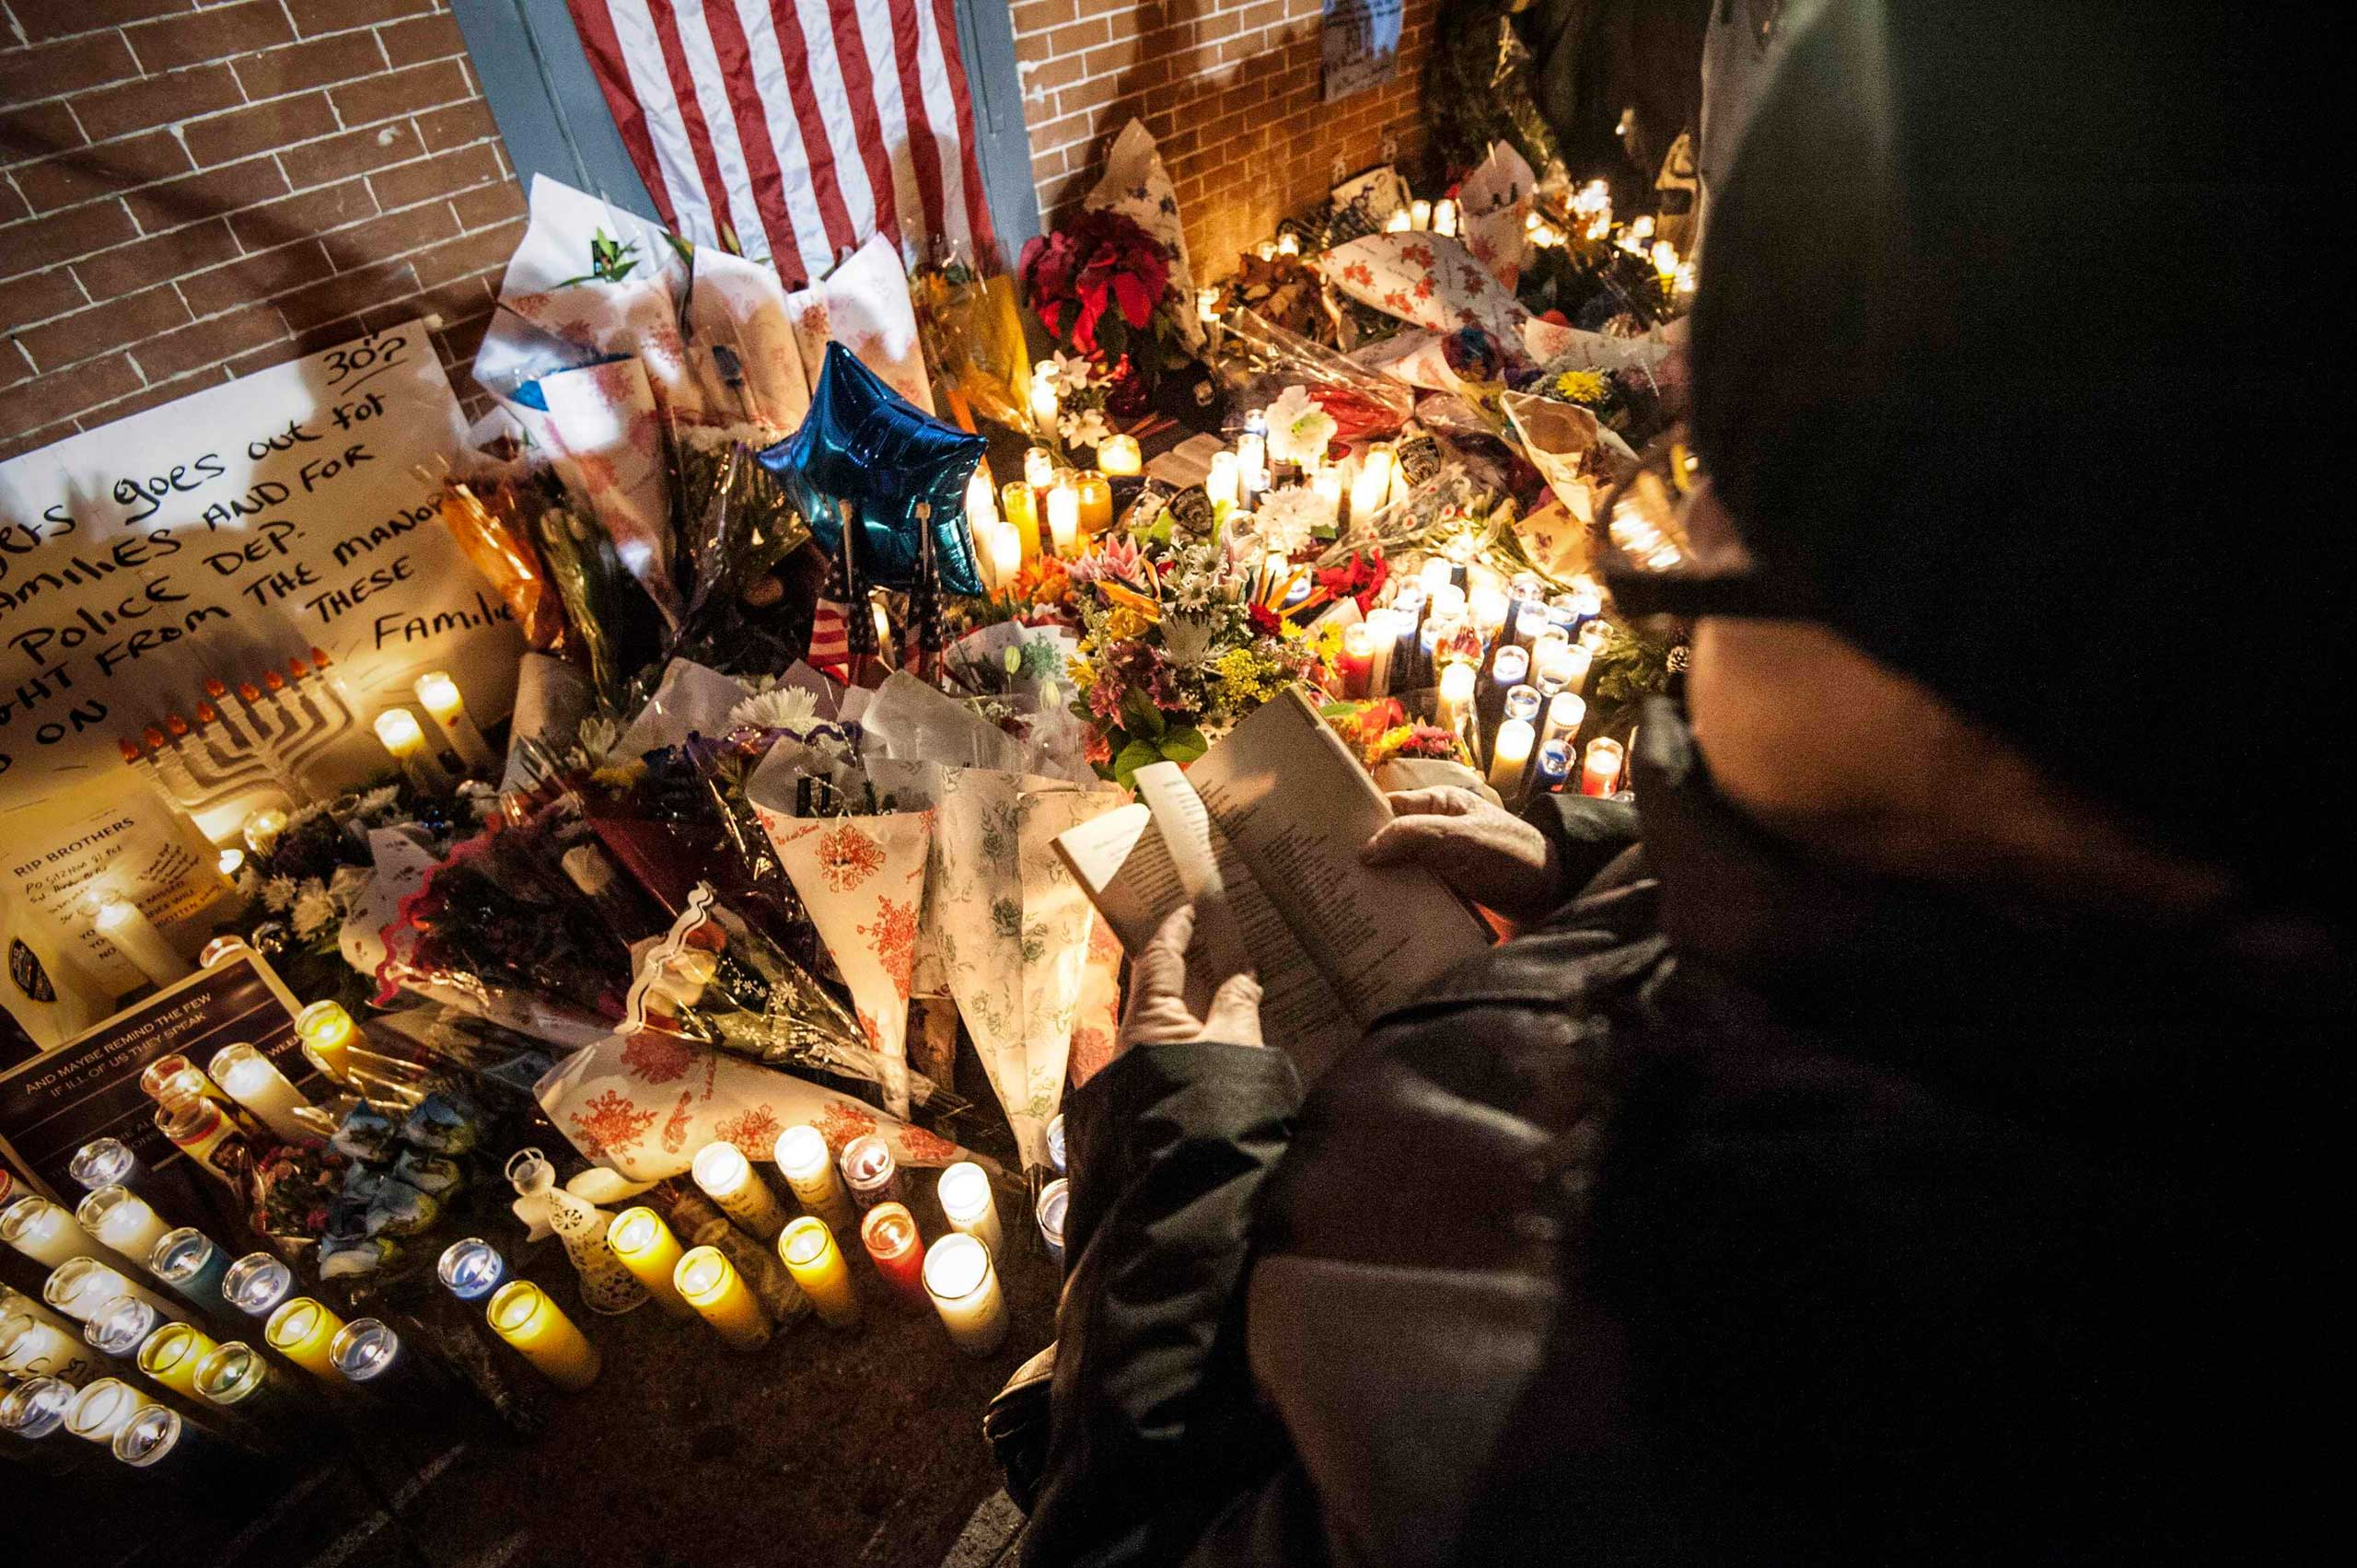 A woman recites from a Bible while standing over a makeshift memorial during a prayer vigil at the site where two  New York Police Department (NYPD)  officers were fatally shot in the Brooklyn borough of New York City, Dec.  21, 2014.